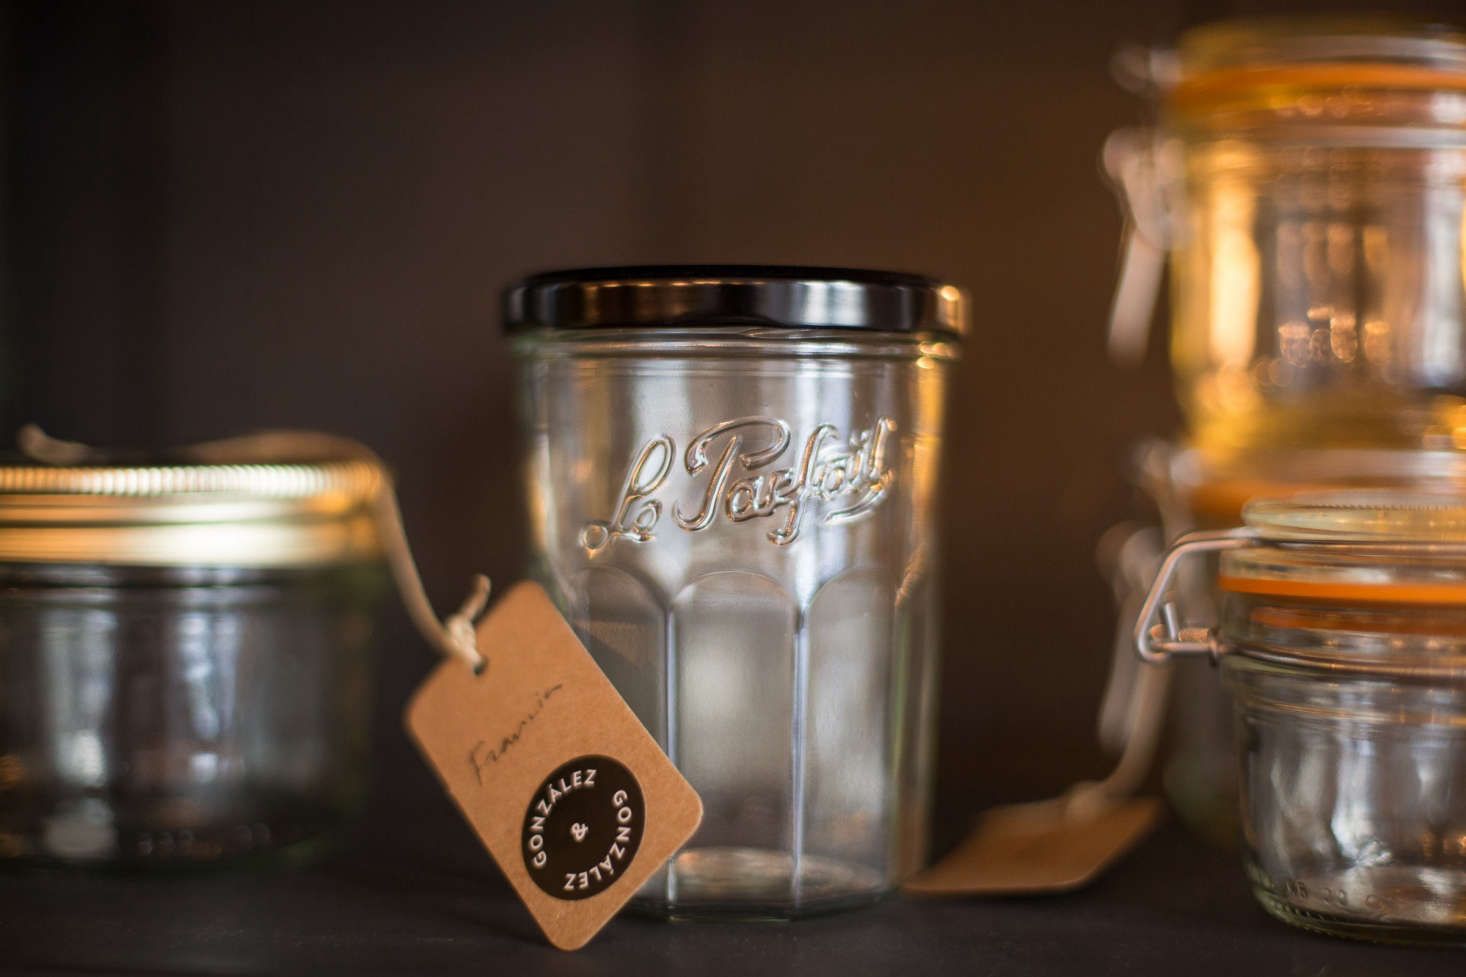 Among the pantry offerings: Le Parfait jam jars with hard-to-find black lids (€